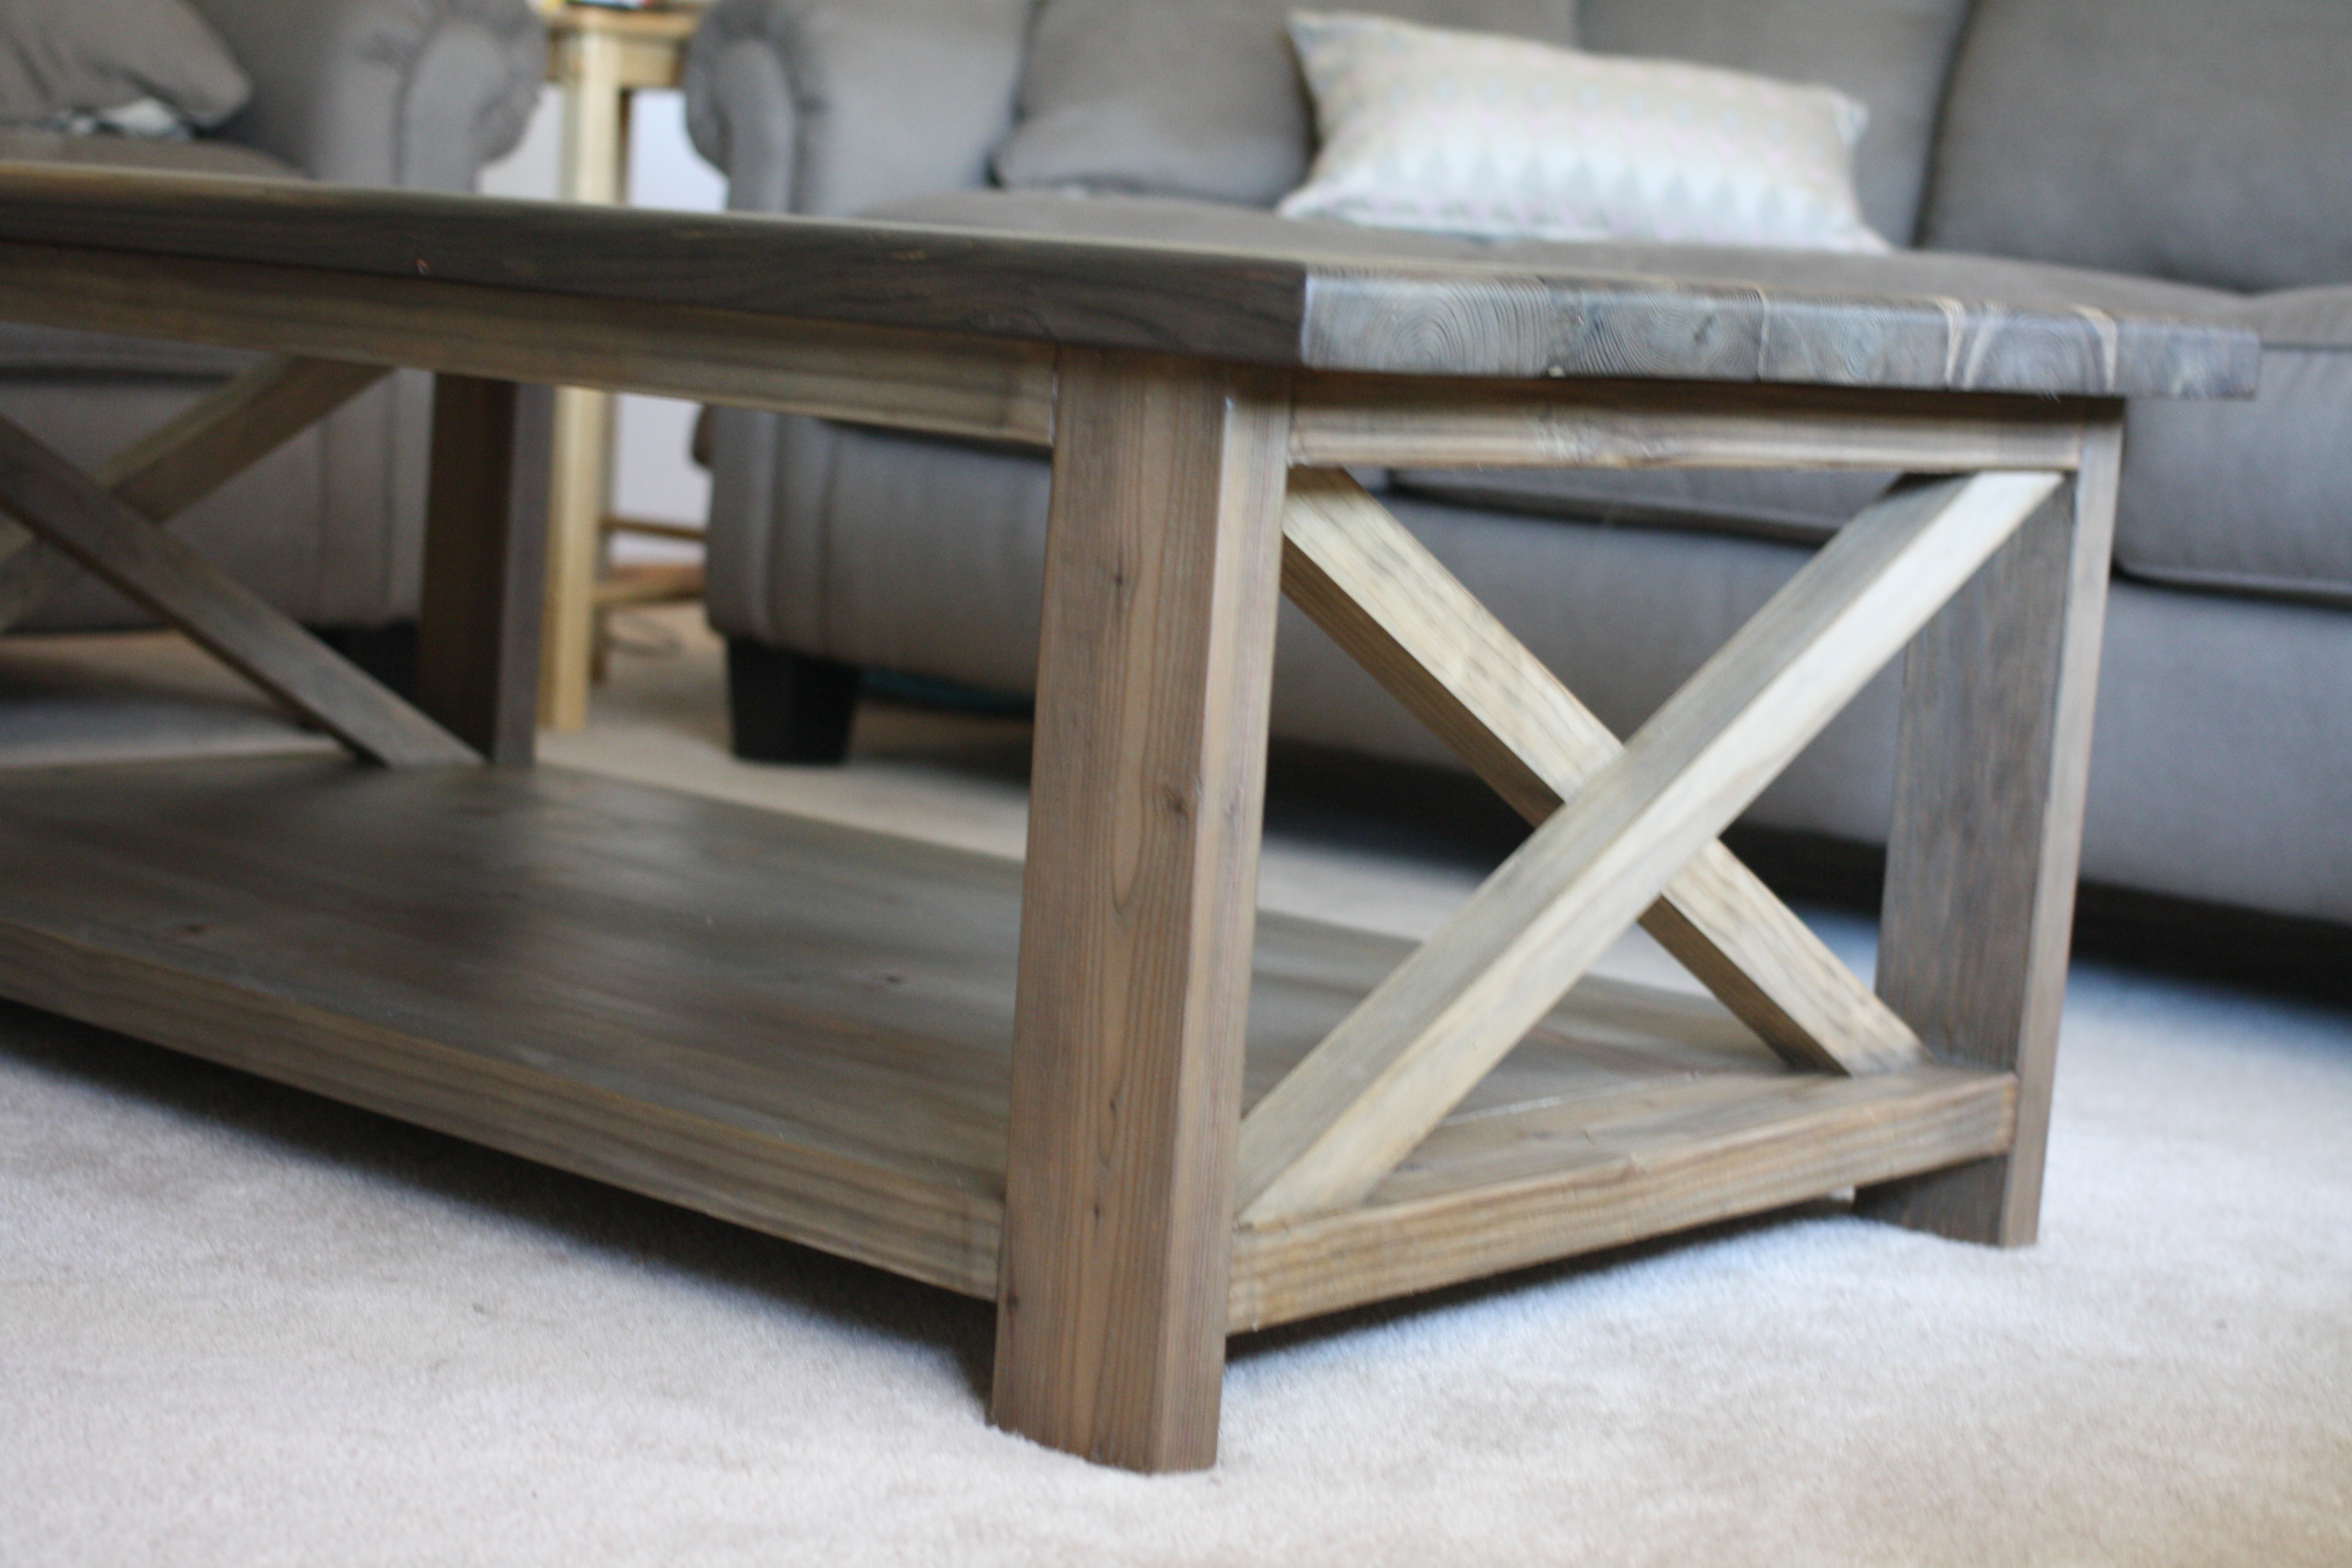 Famous Coffee Table: Awesome Design Ideas Of Rustic Coffee Tables Rustic Inside Modern Rustic Coffee Tables (View 4 of 20)